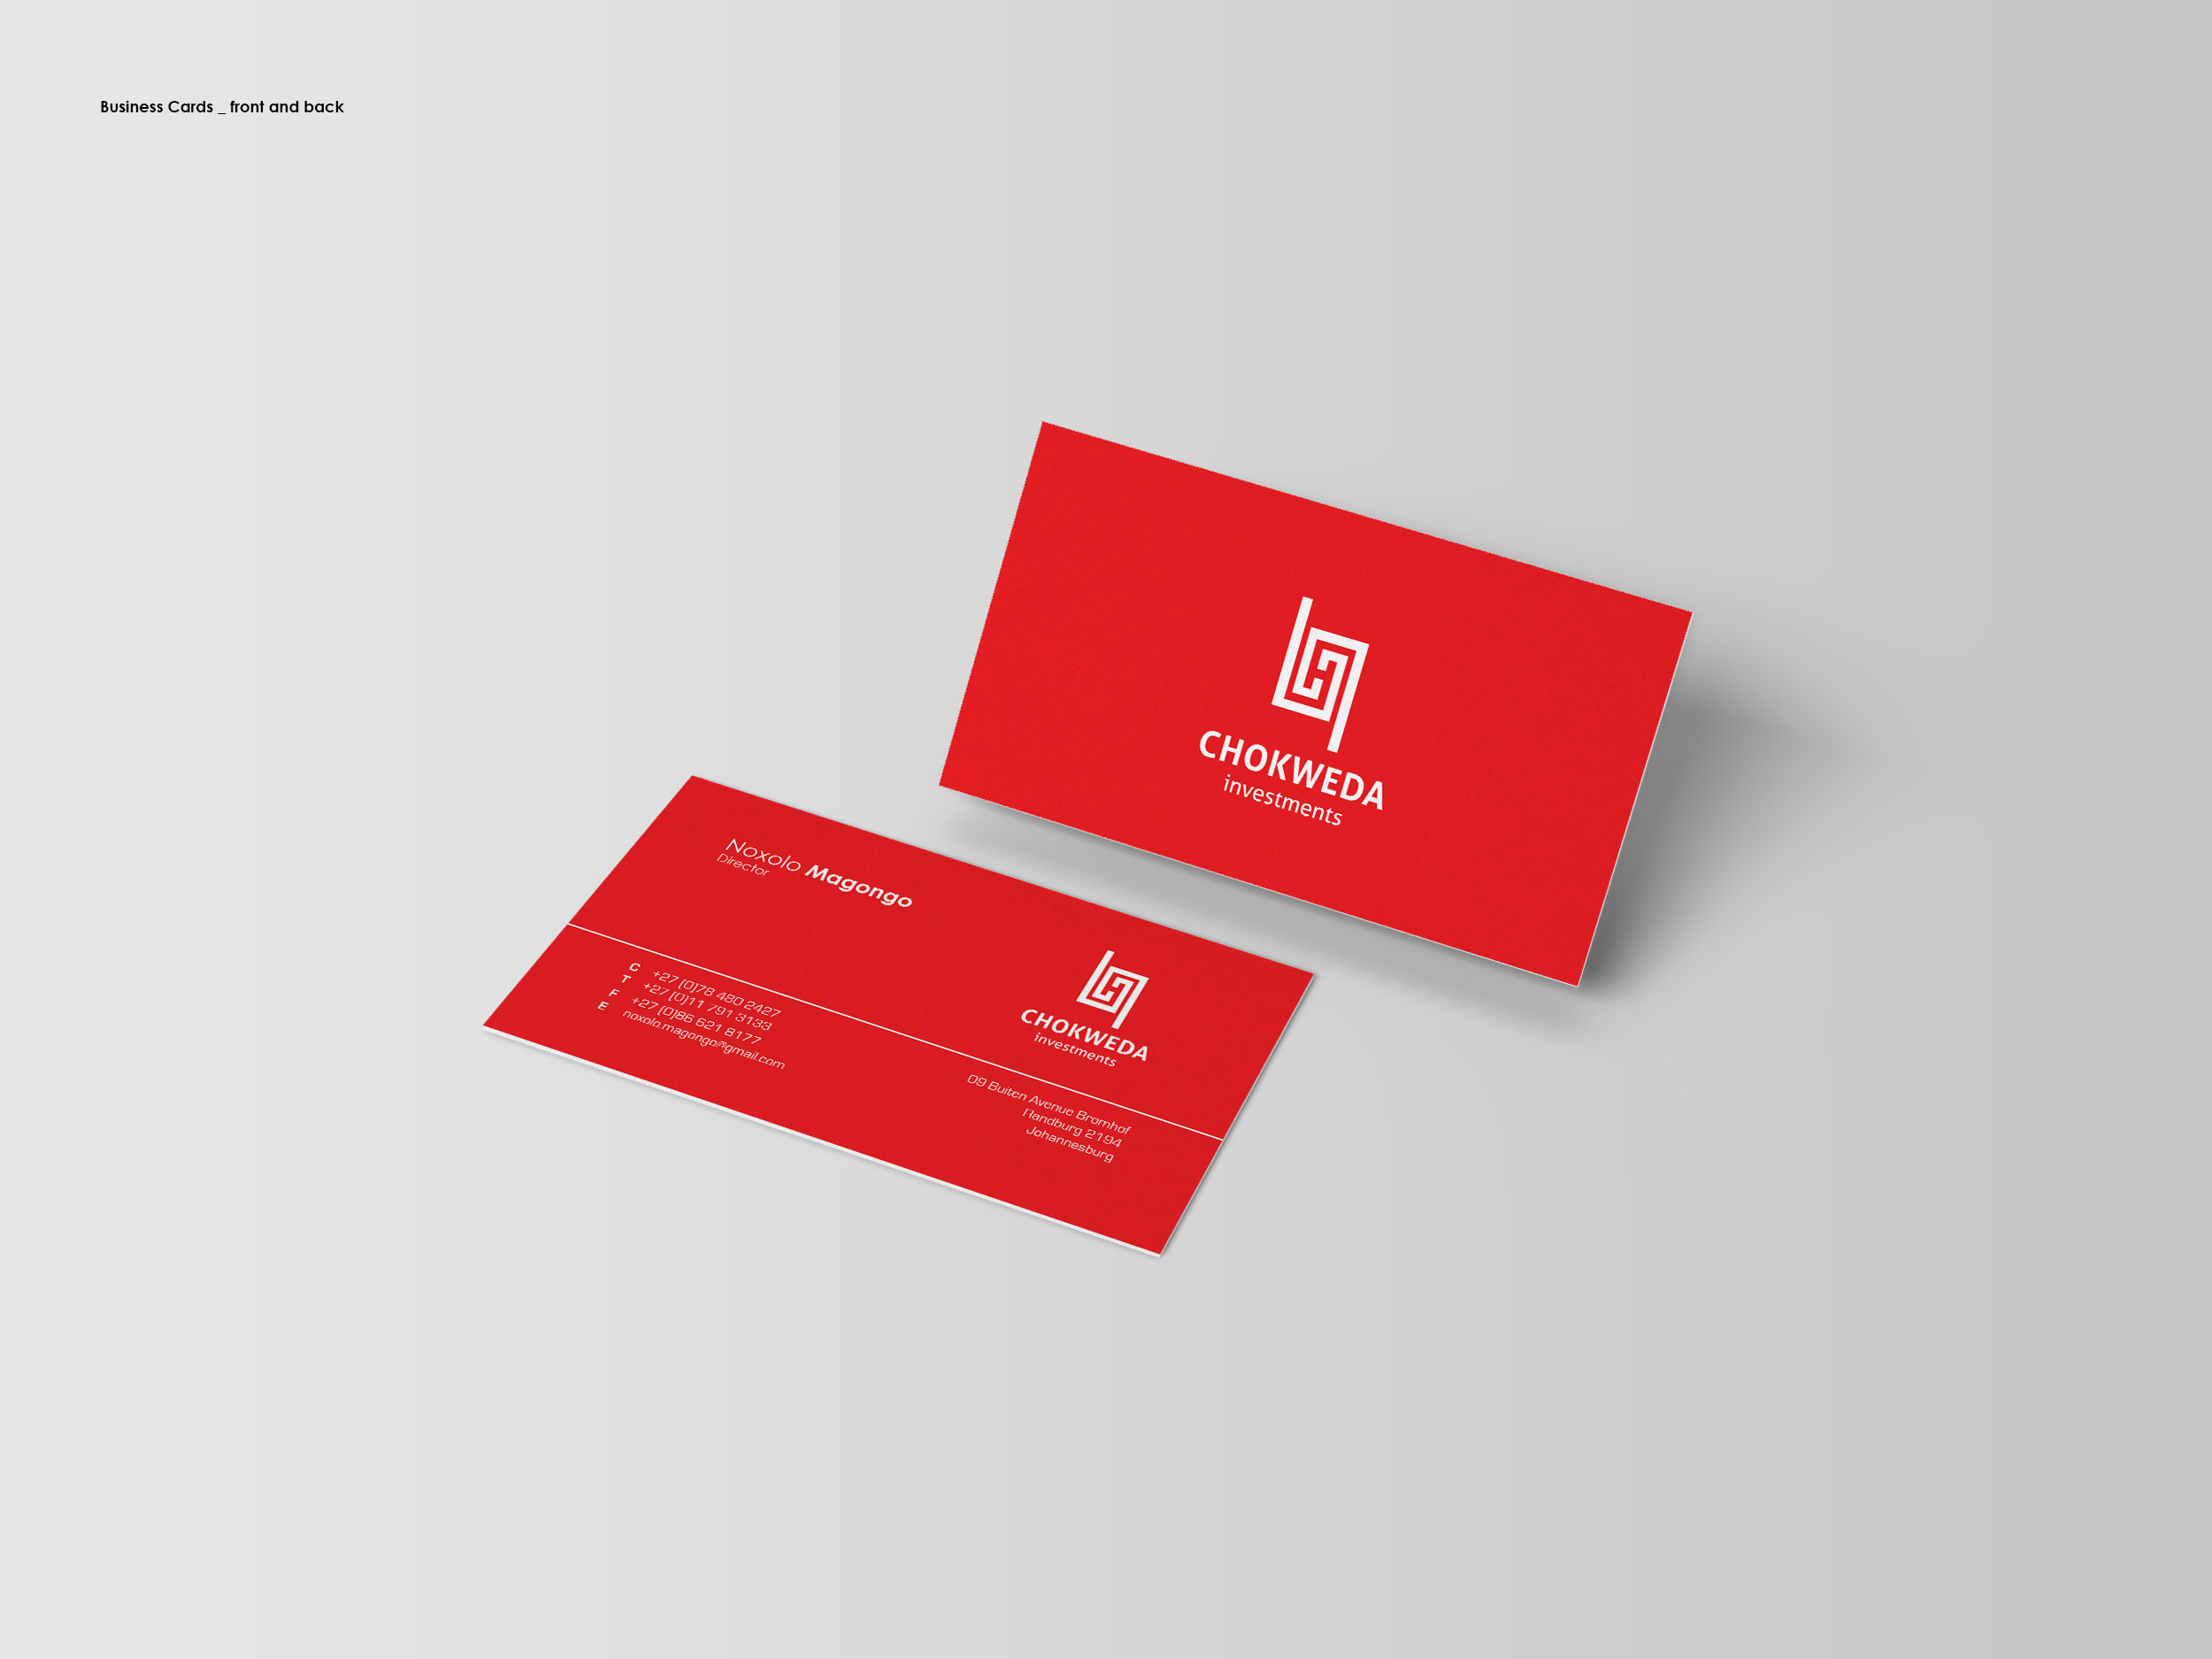 Delighted moon business cards ideas business card ideas etadam amazing business cards johannesburg images business card ideas reheart Gallery